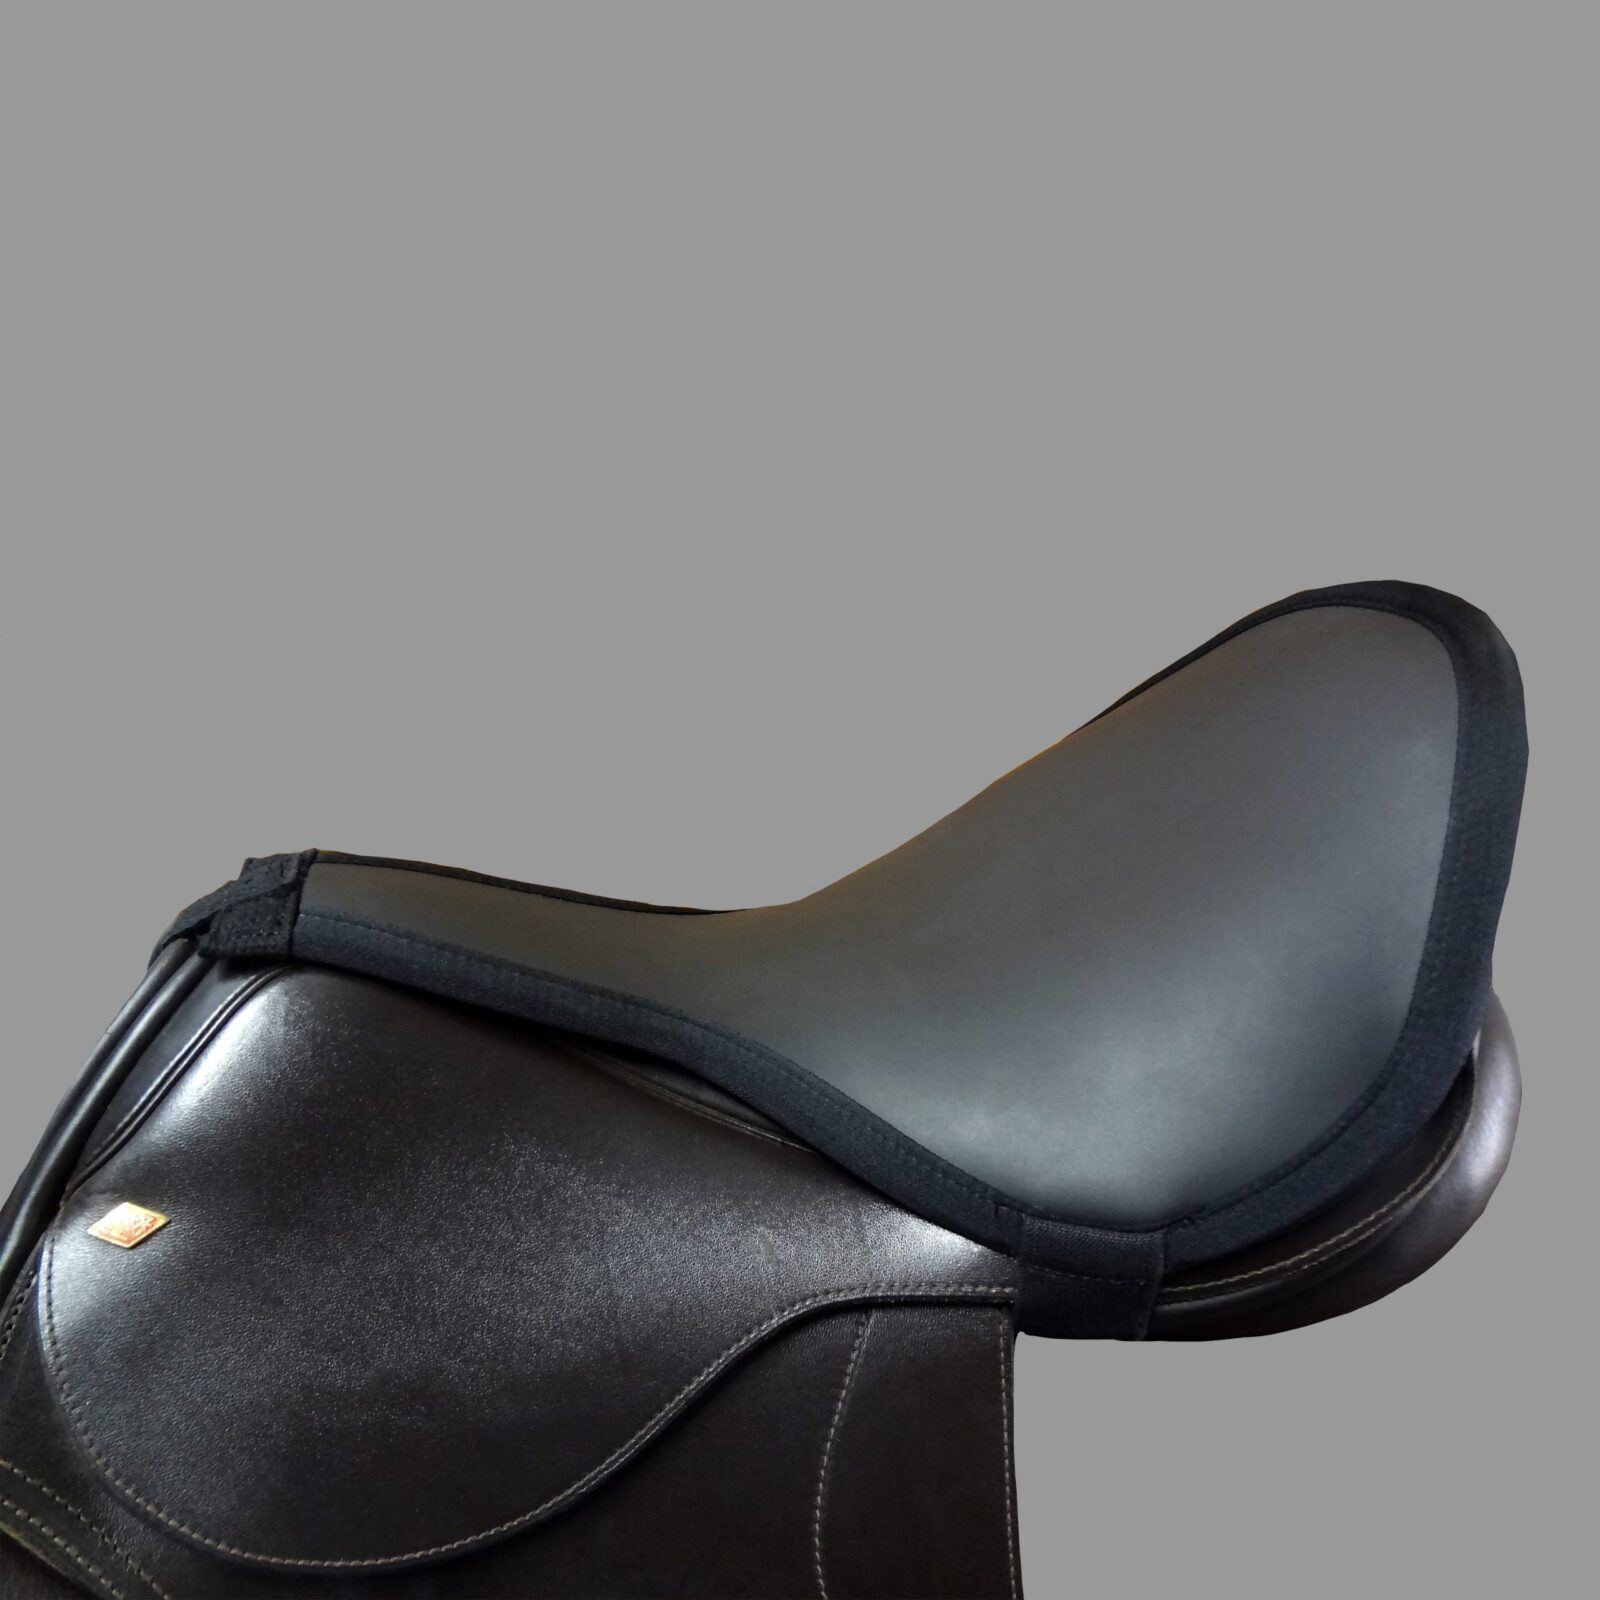 8897, 8898, 8899 - English Seat Saver on a Saddle